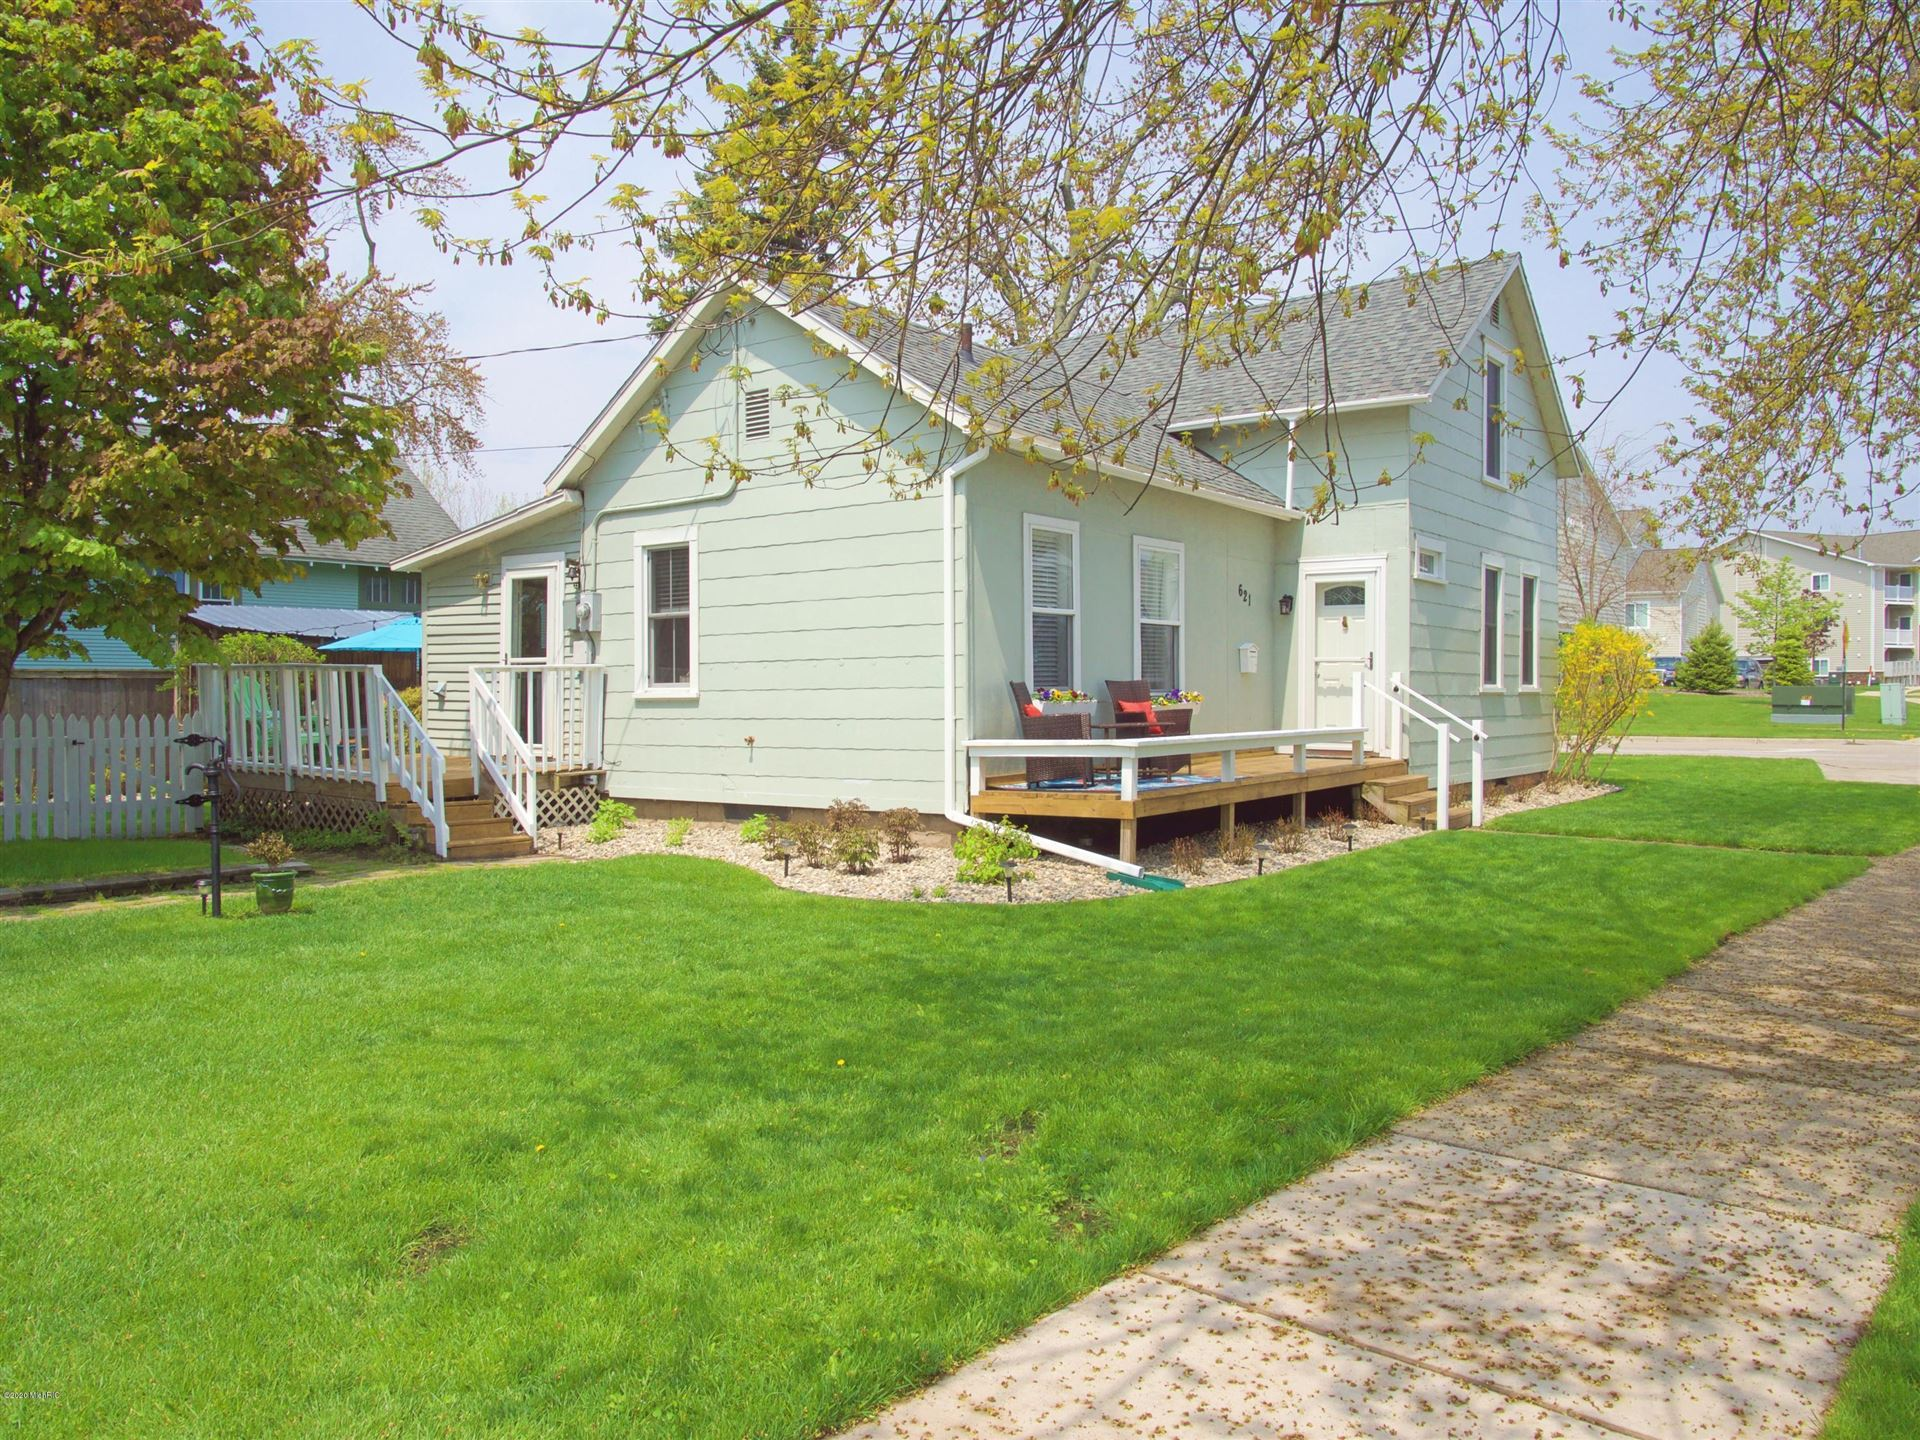 621 N 5th Street, Grand Haven, MI 49417 - MLS#: 20040889